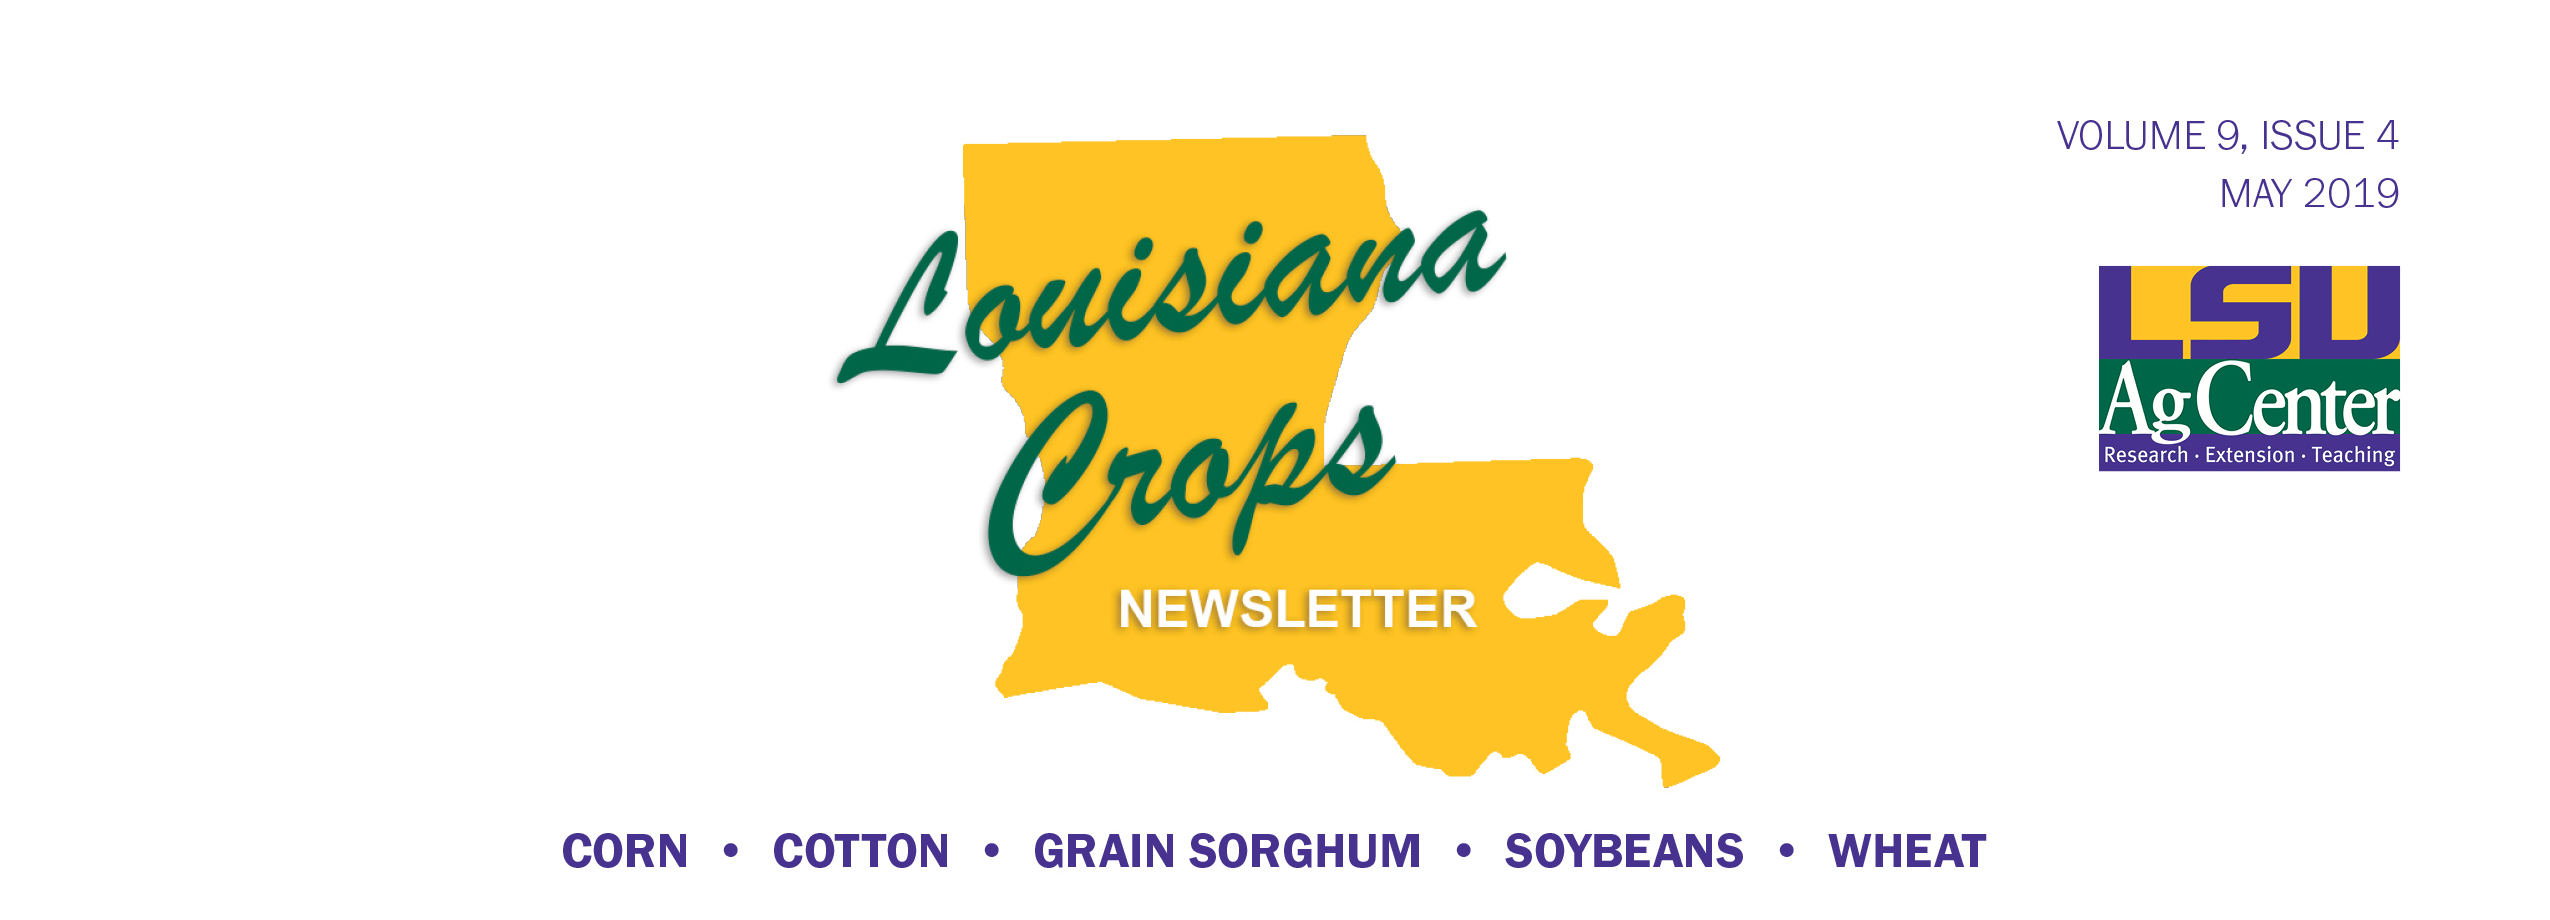 Louisiana Crops newsletter May 2019 header.jpg thumbnail